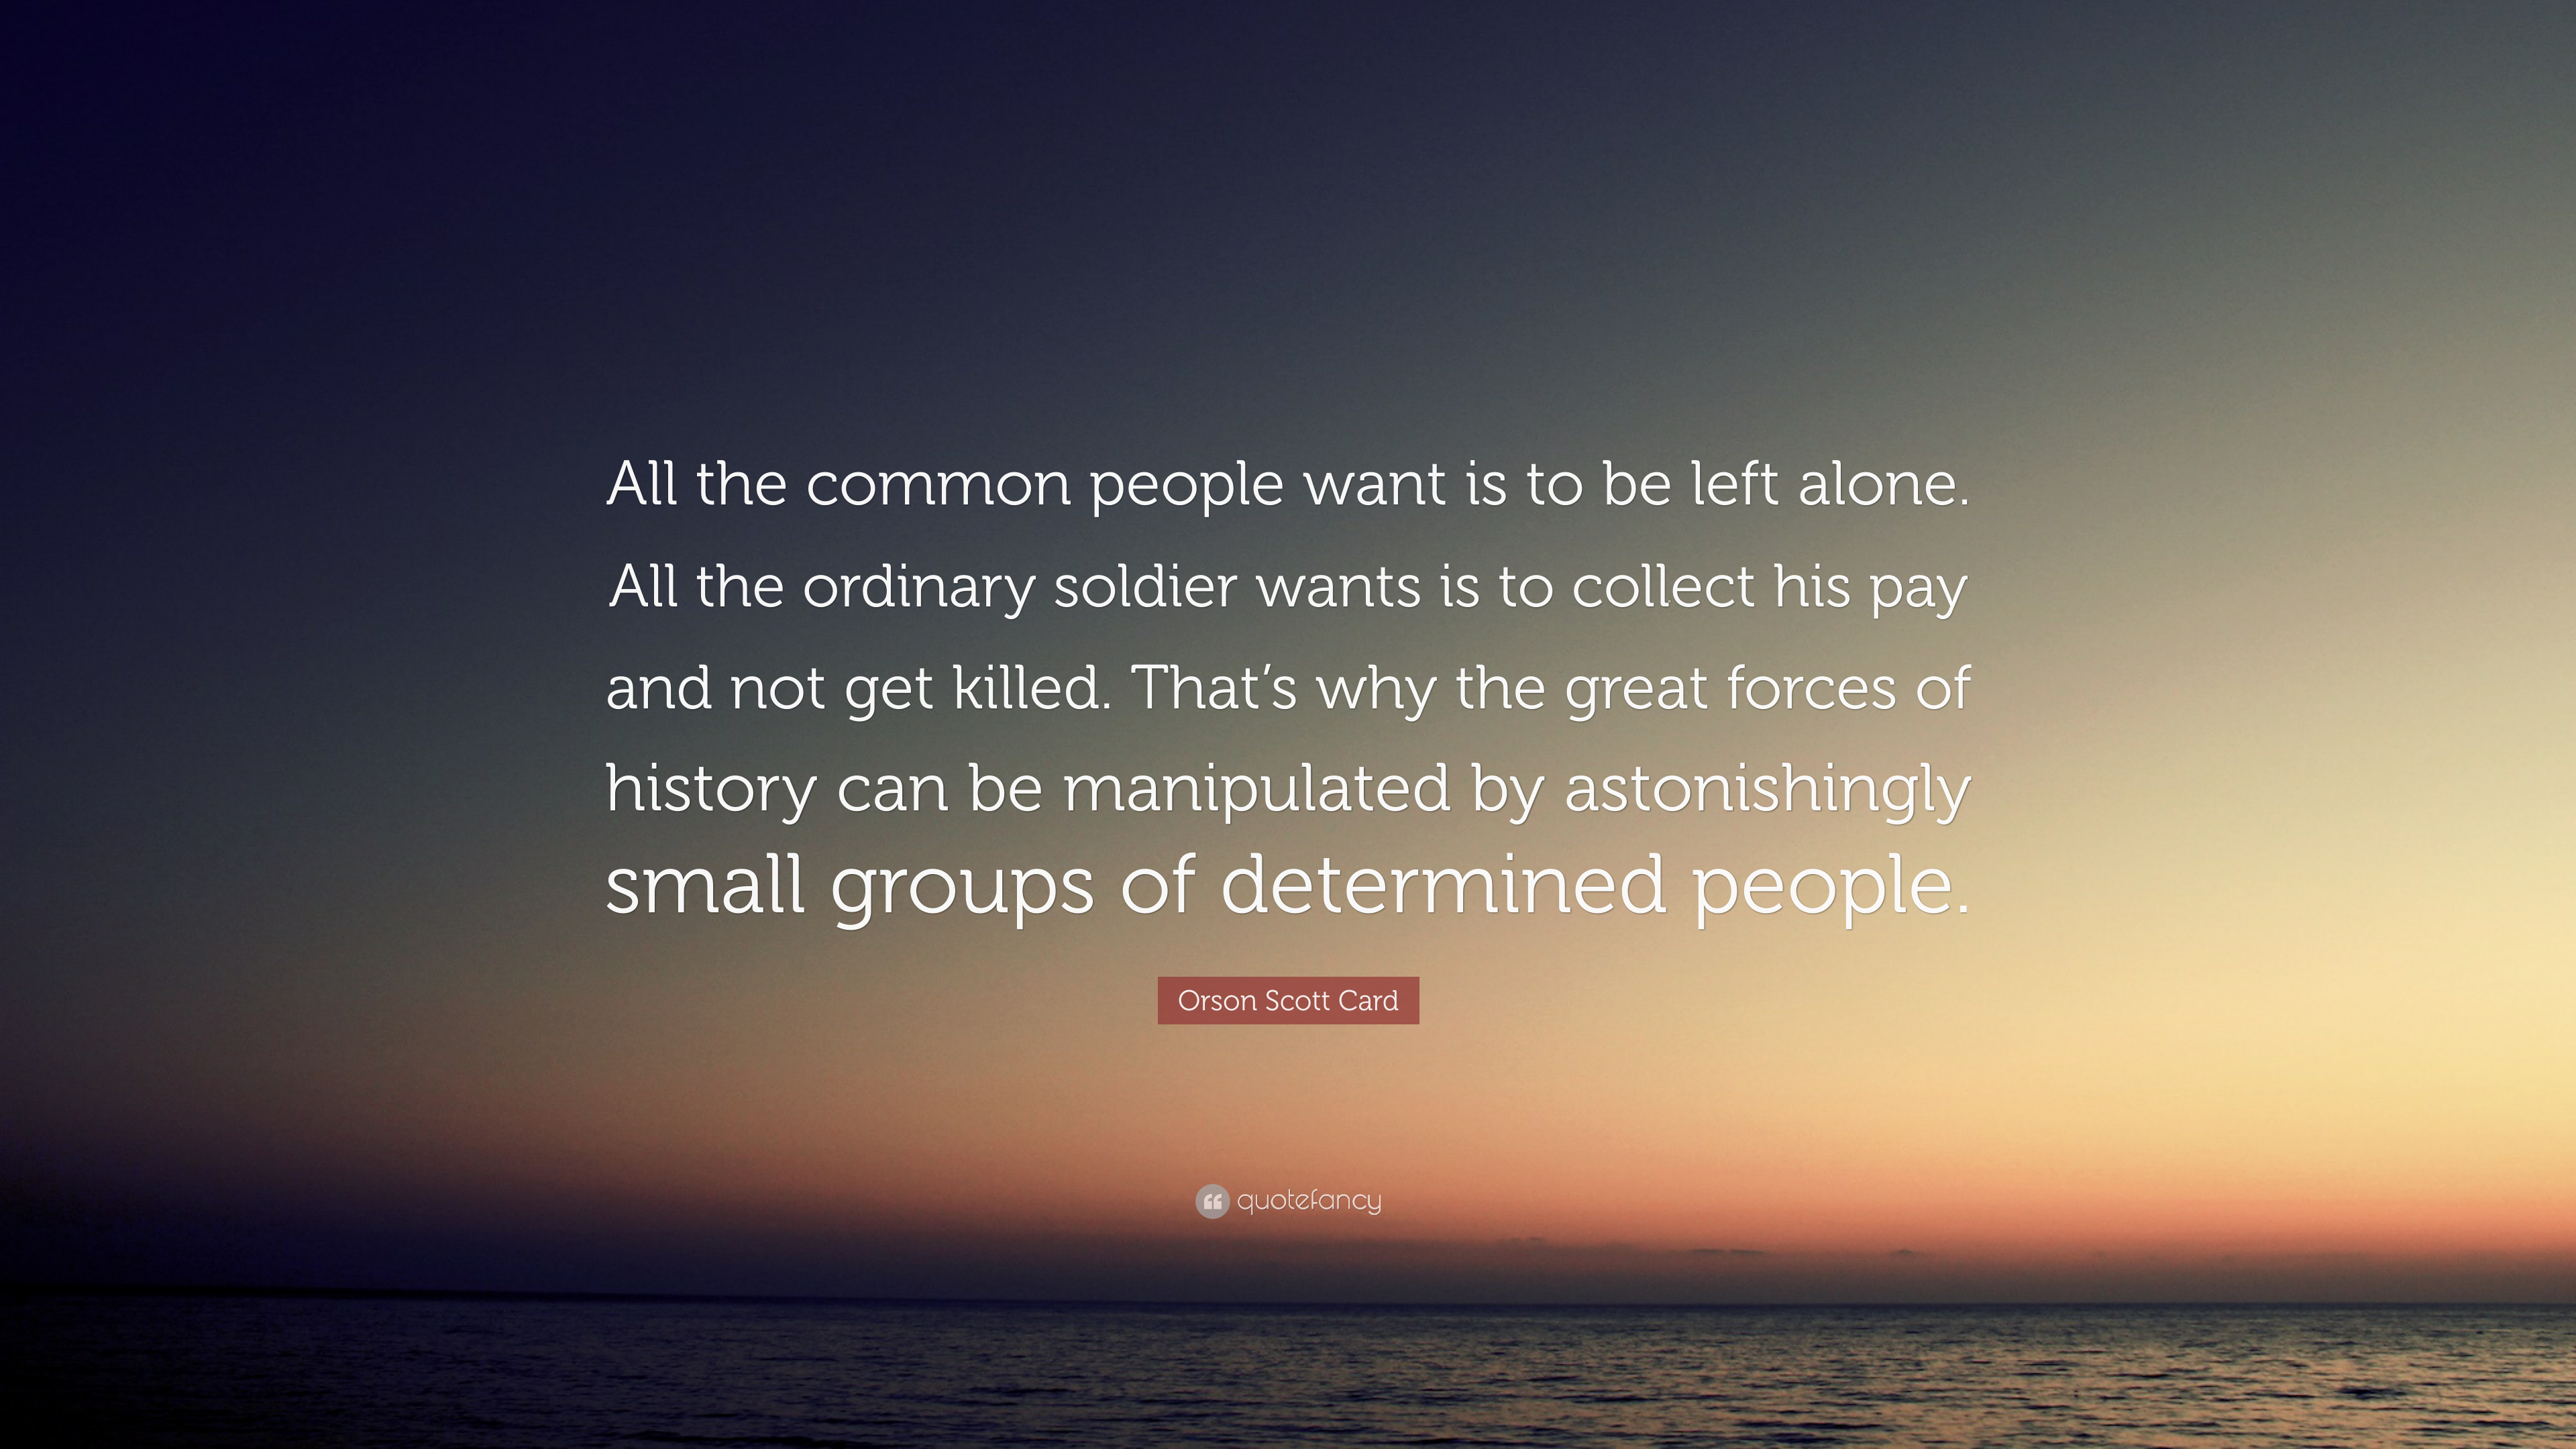 Orson Scott Card Quote All The Common People Want Is To Be Left Alone